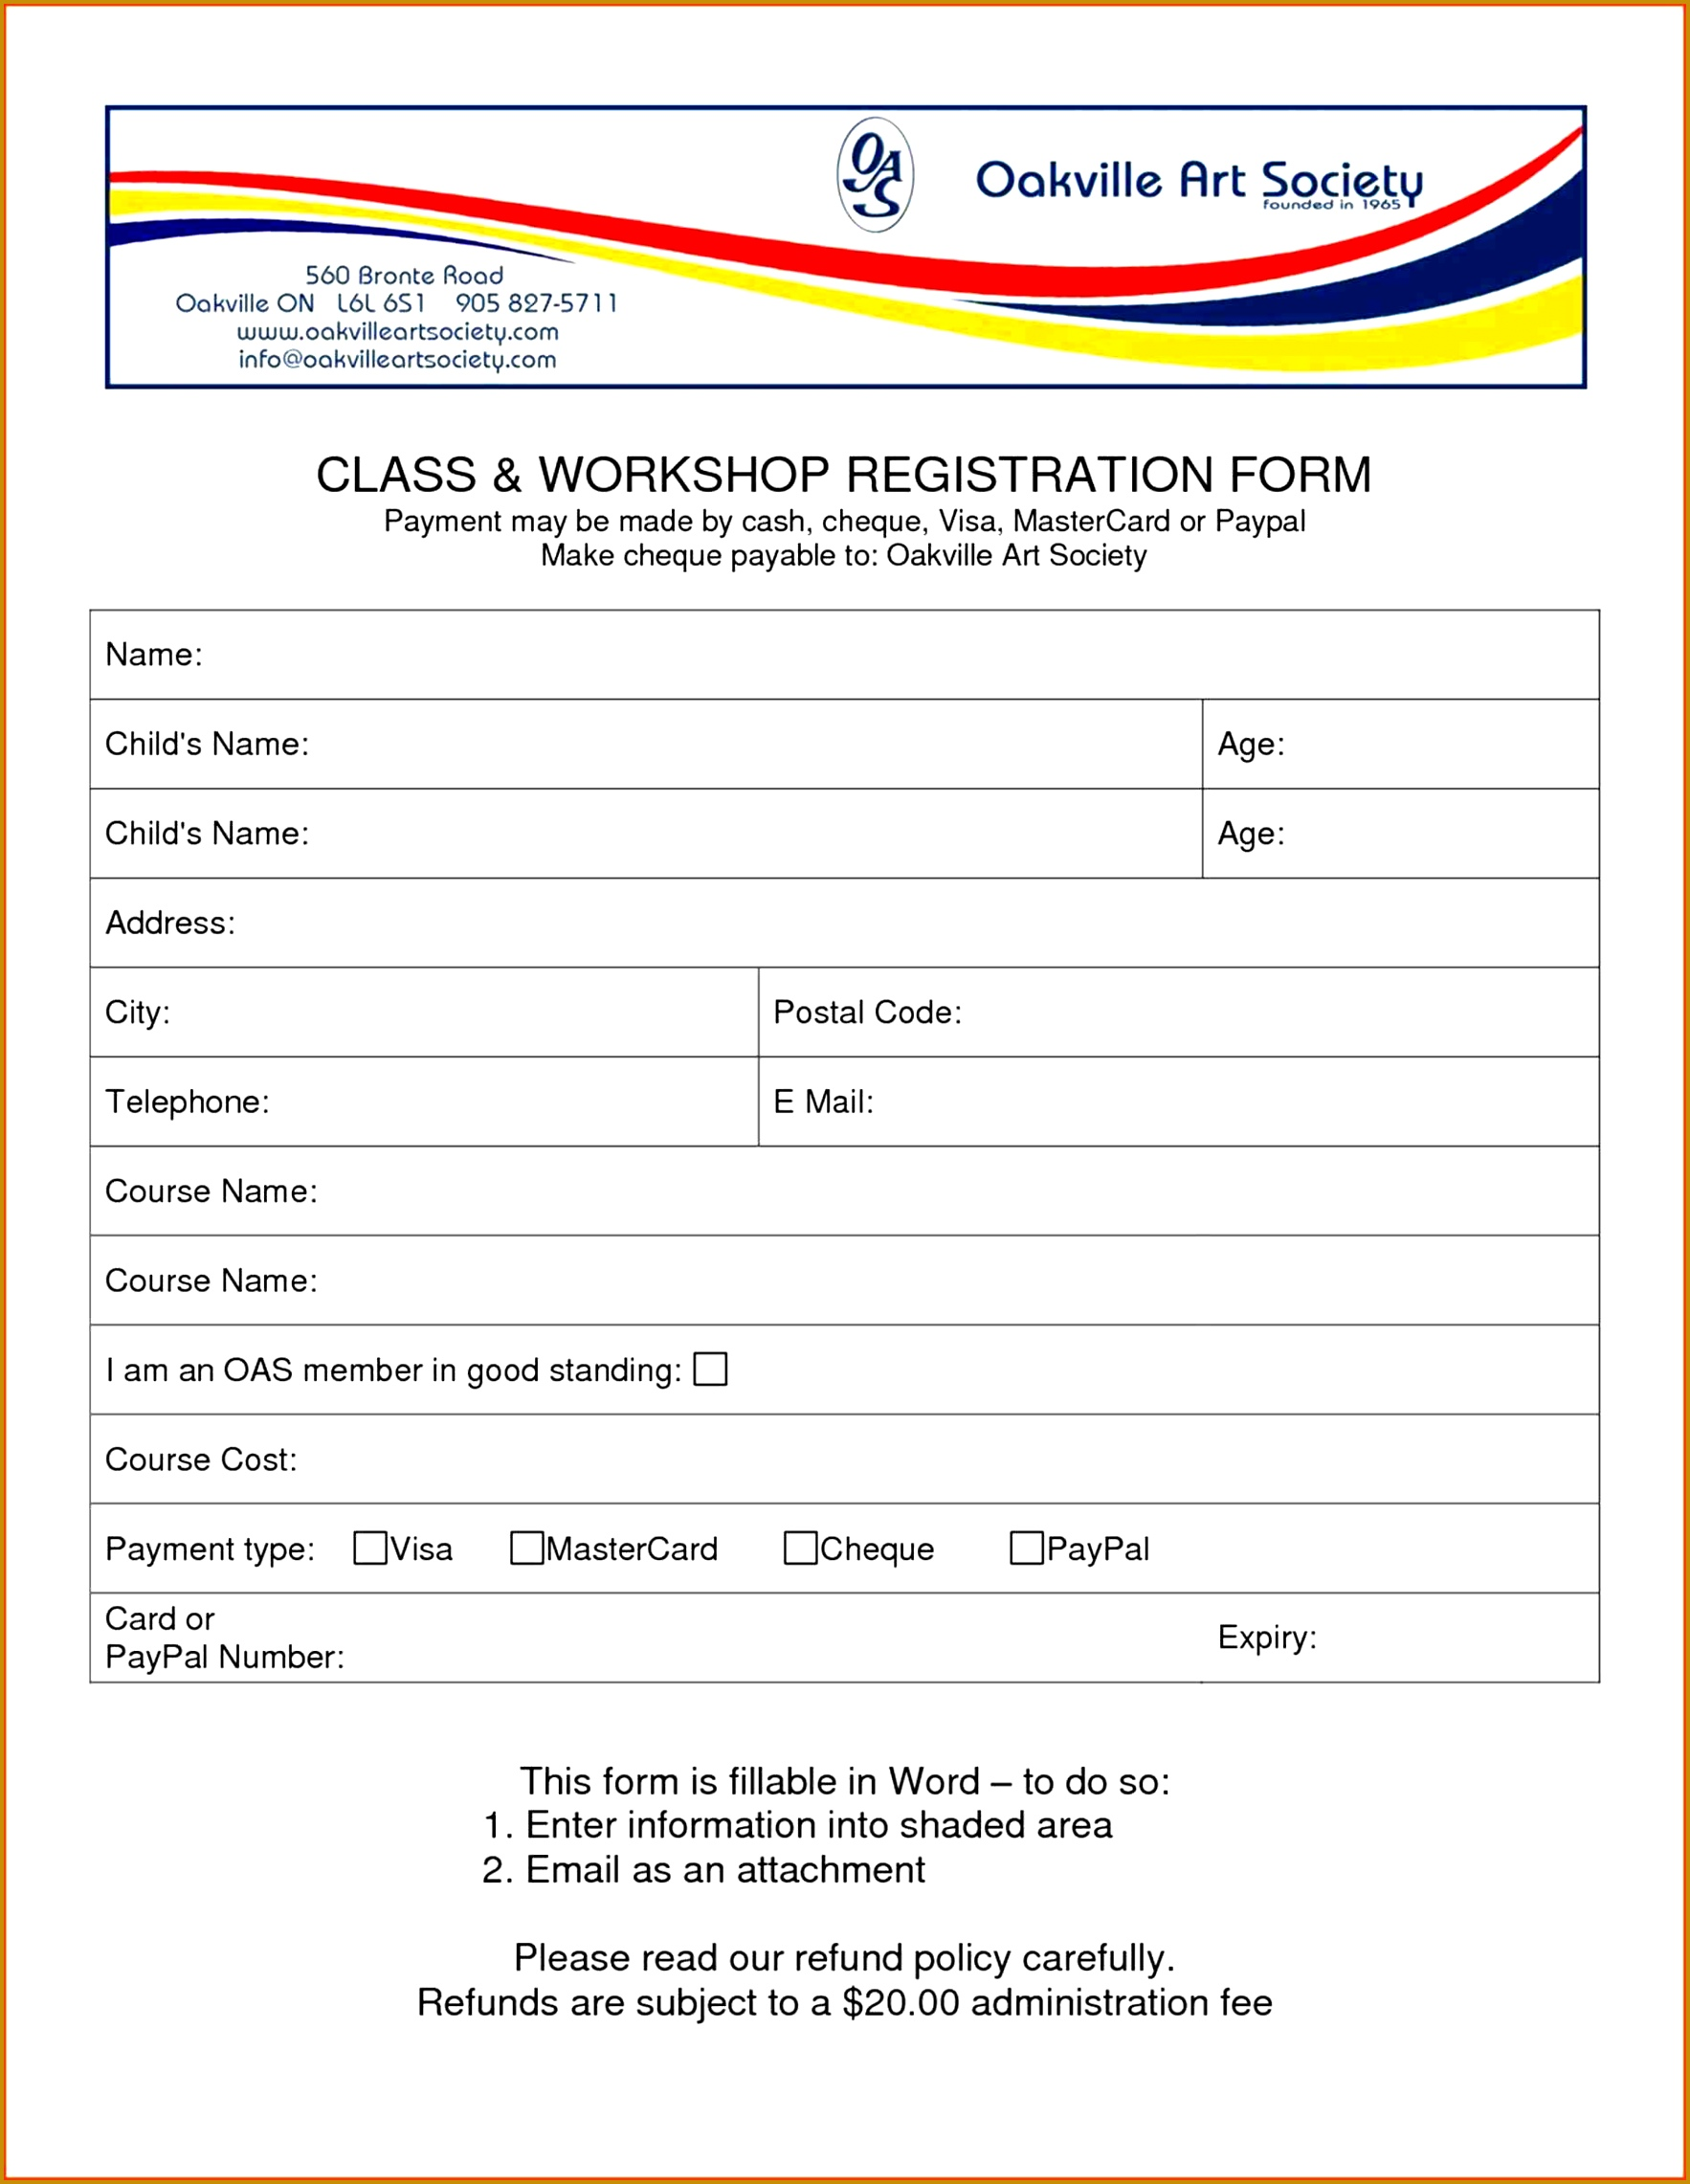 7 Training Course Registration Form Template   FabTemplatez .  Enrolment Form Template